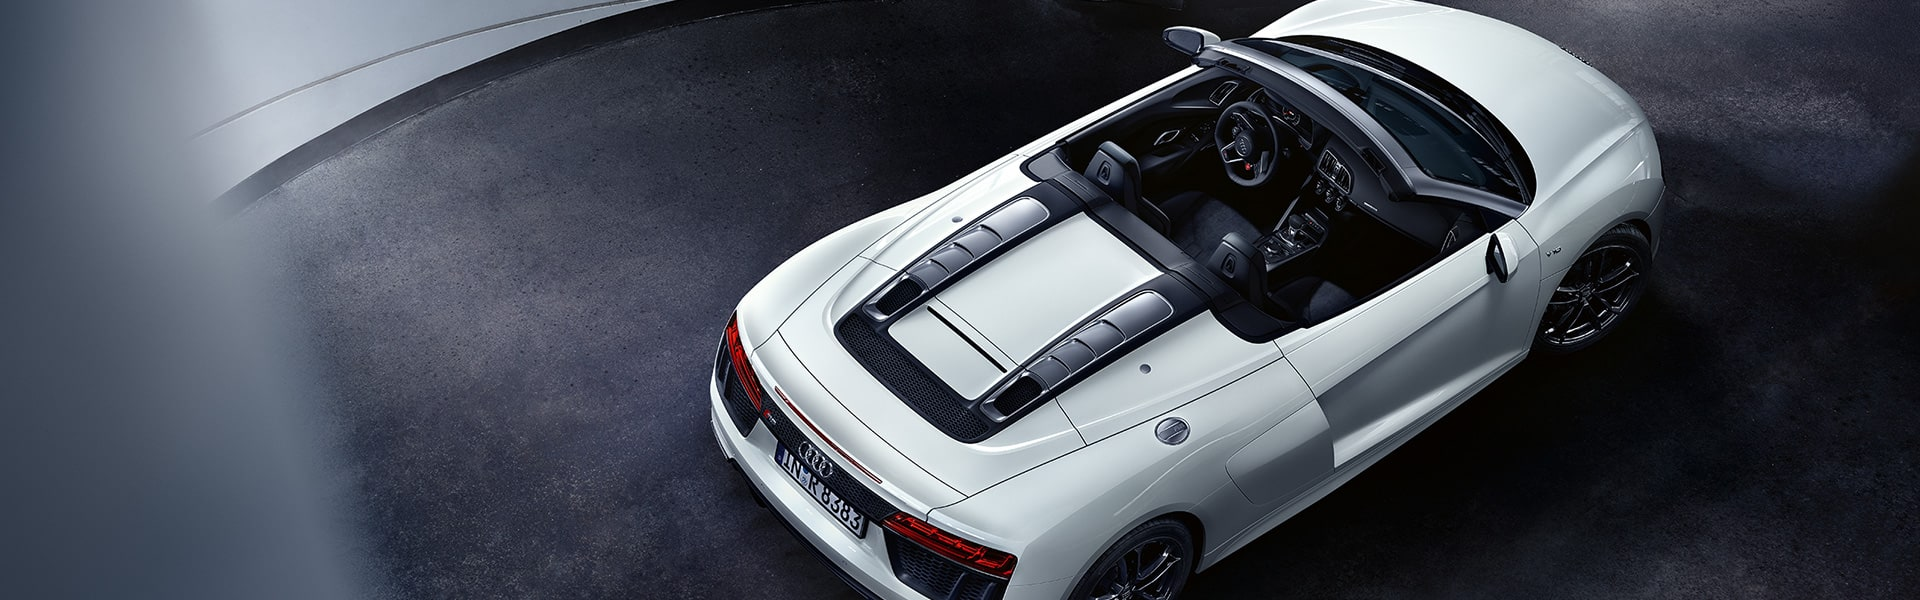 The new Audi R8 Spyder V10 RWS